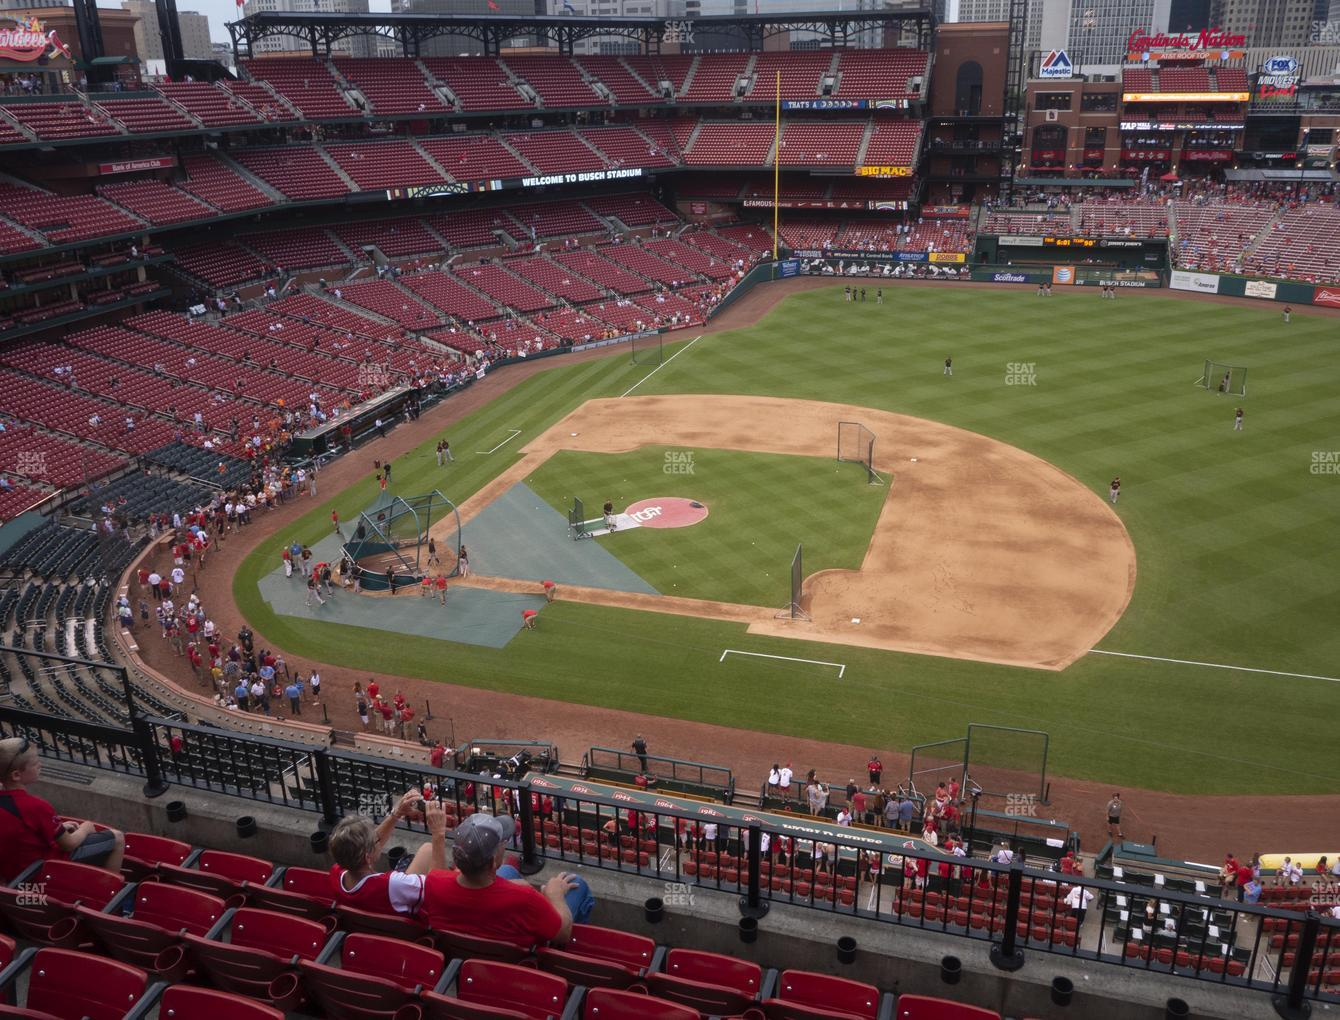 St. Louis Cardinals at Busch Stadium Infield Pavilion 342 View